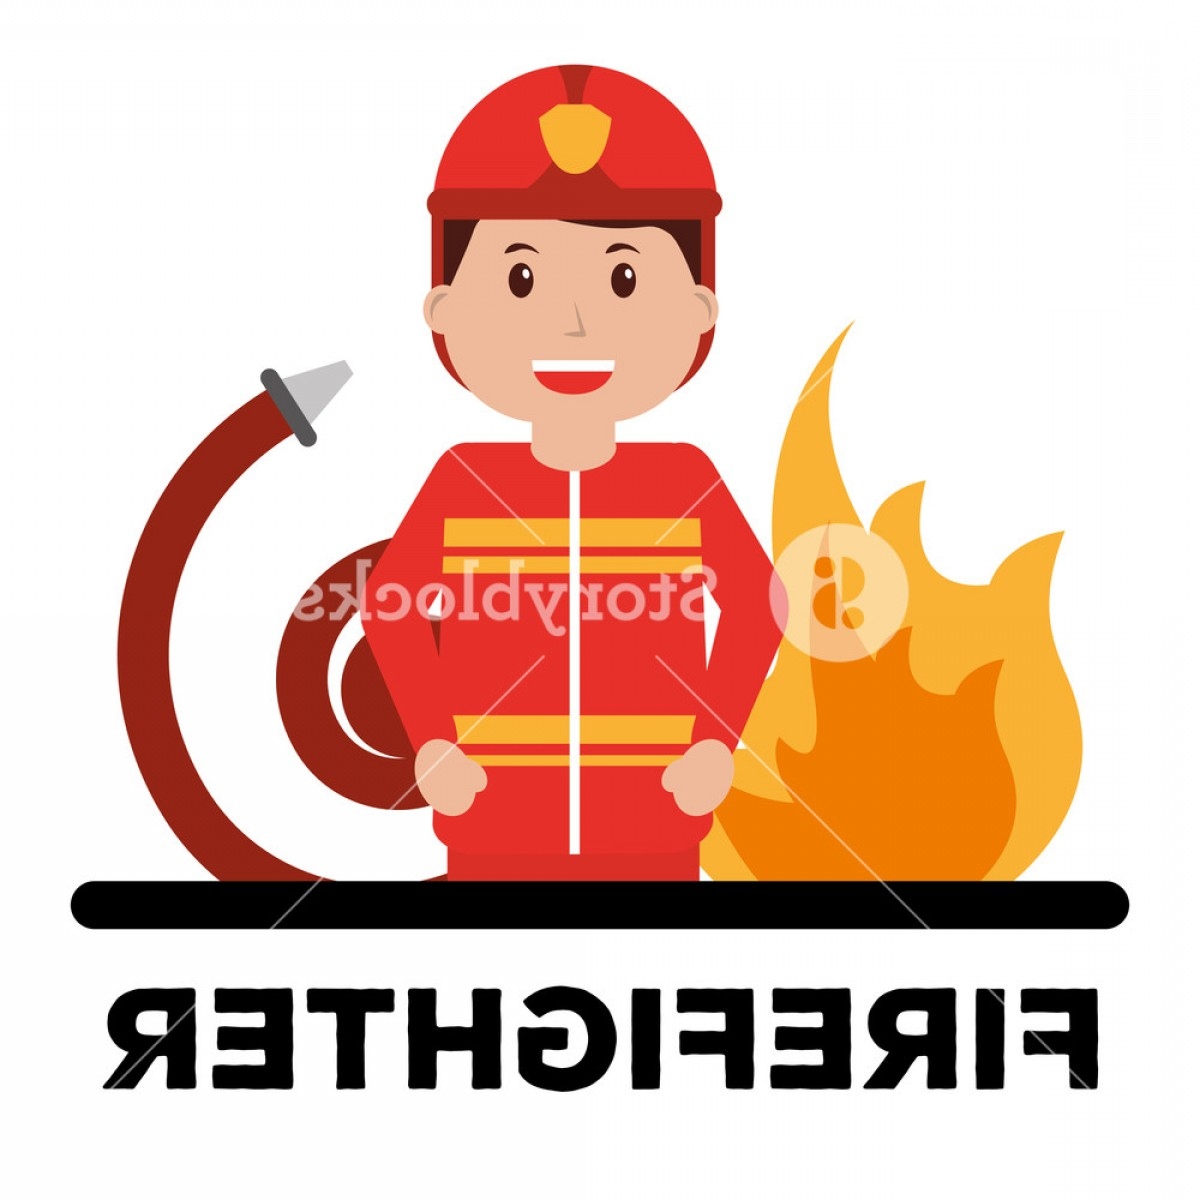 Red Professional Background Vectors: Firefighter Character Professional Avatar Typography Red Background Vector Illustration Rk Psbqozjedgh